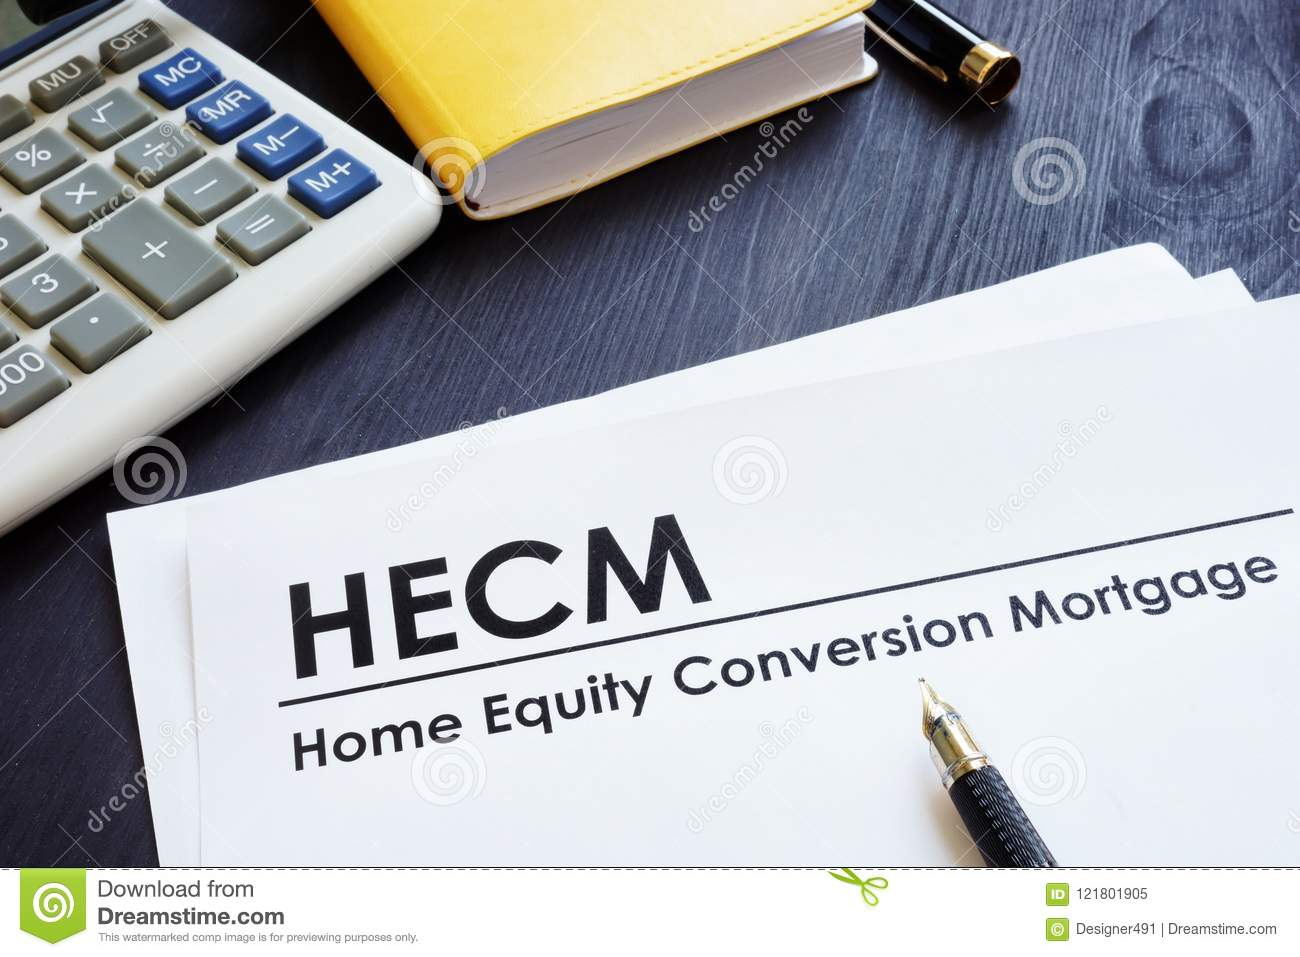 Home Equity Conversion Mortgage HECM.